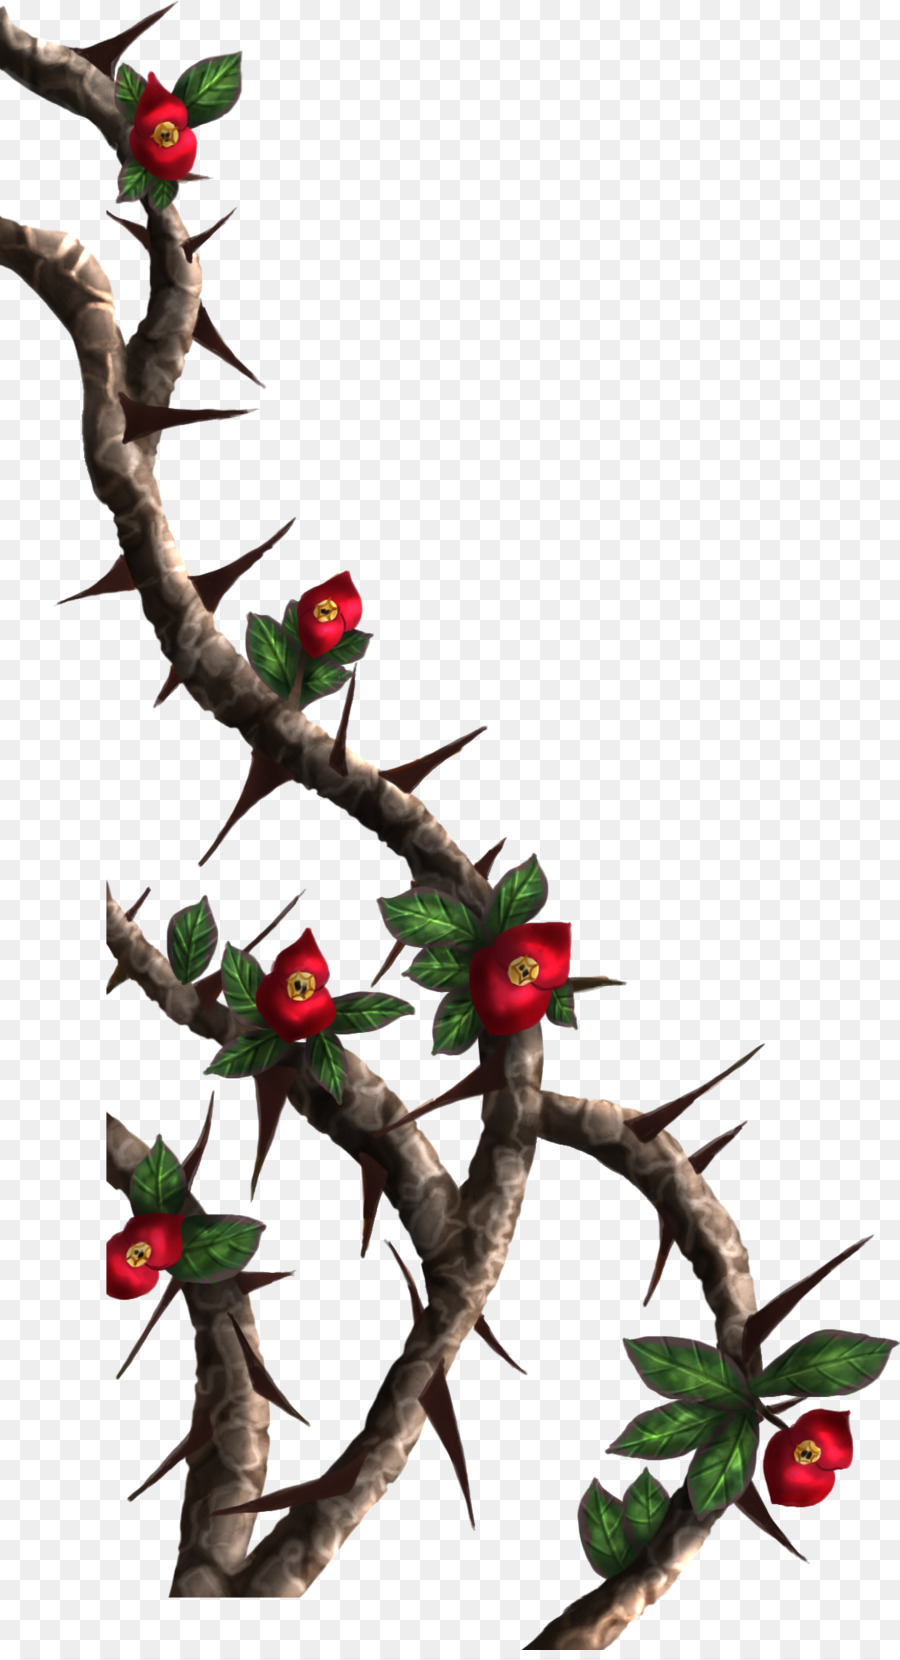 Thorn vine clipart image royalty free library Drawing Christmas Tree clipart - Drawing, Rose, Vine ... image royalty free library